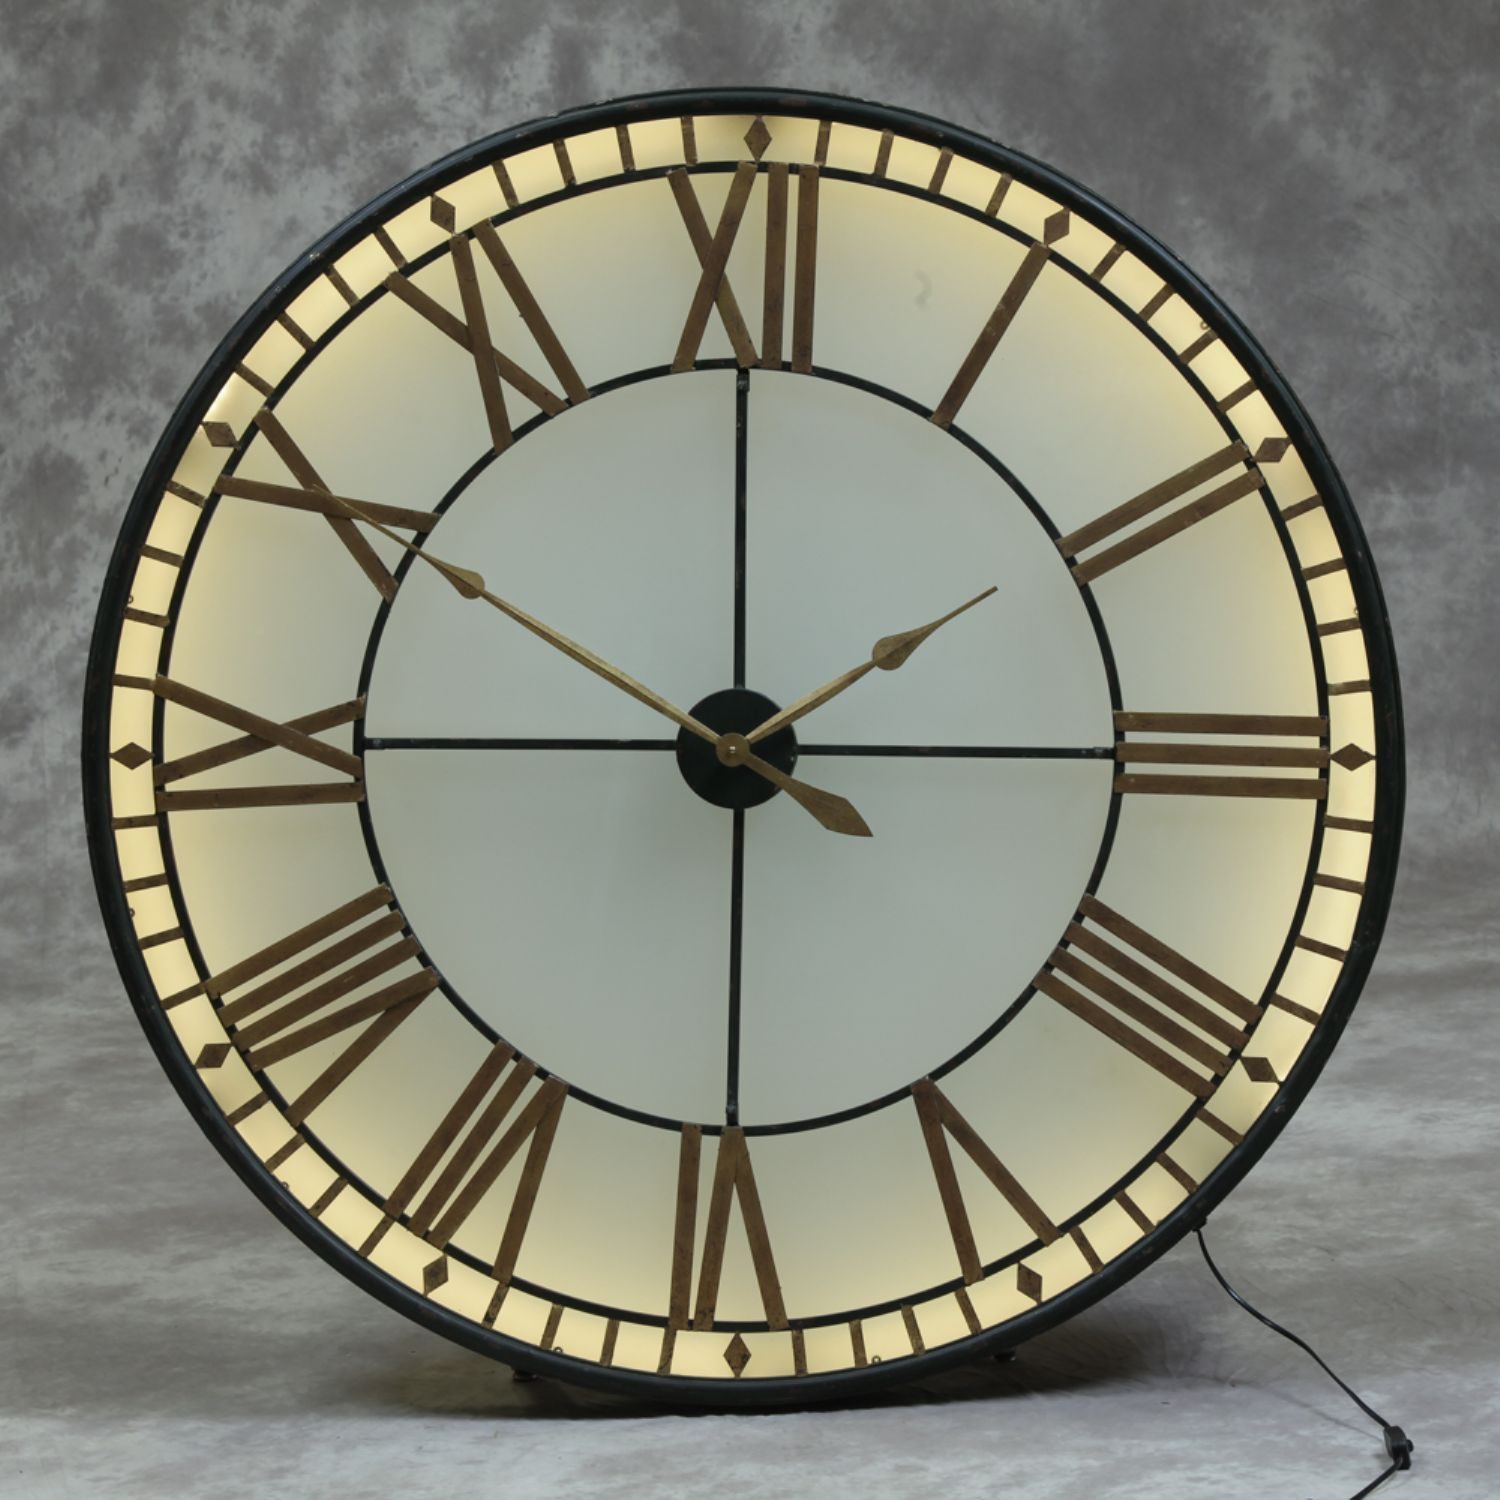 Large Round Black Gold Westminster Wall Clock Back Lit Glass Led 120cm Diameter Big Wall Clocks Extra Large Wall Clock Mirror Wall Clock